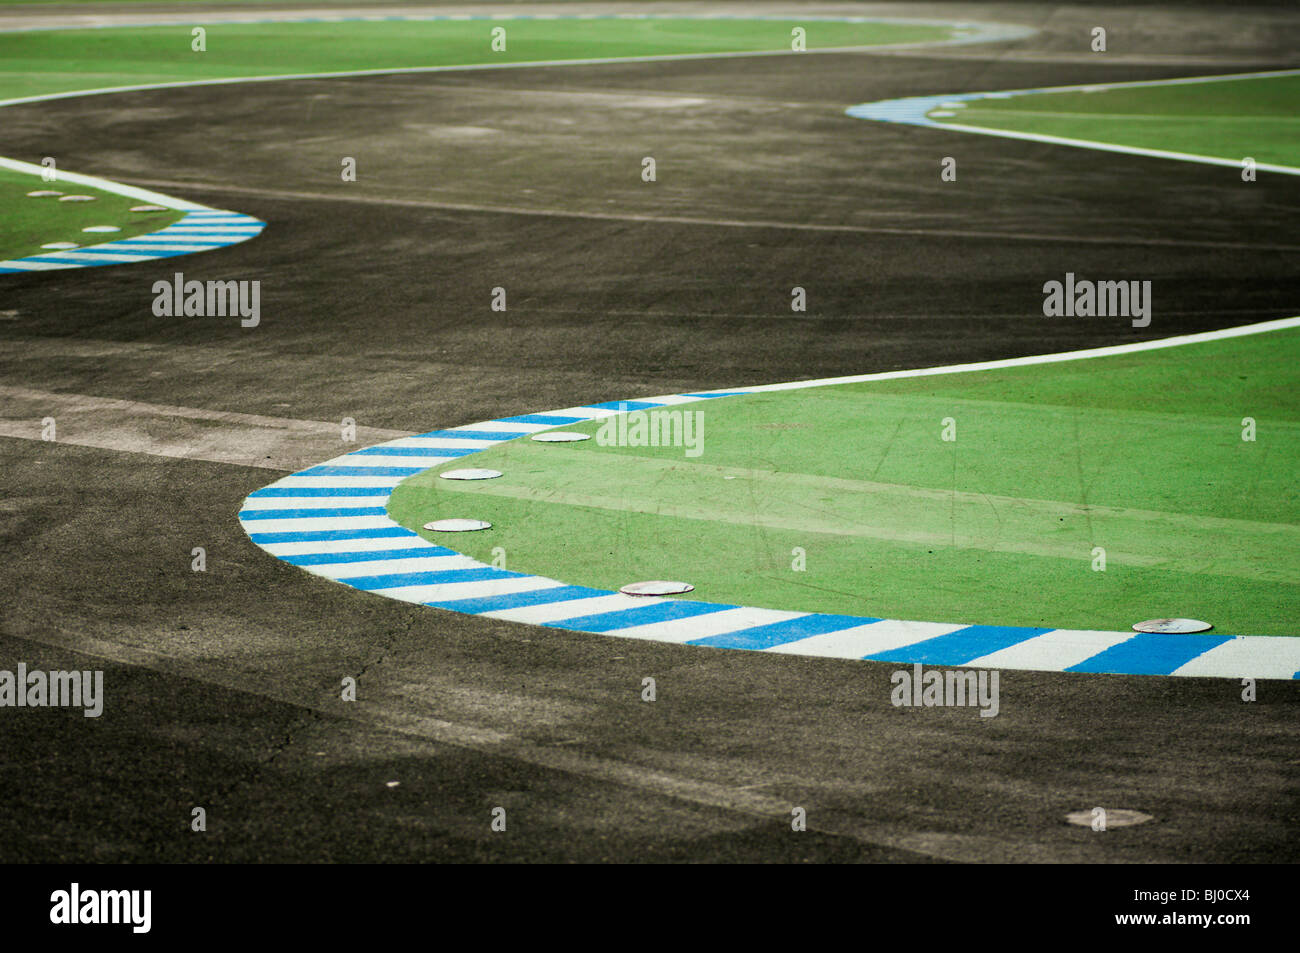 piste de course Photo Stock